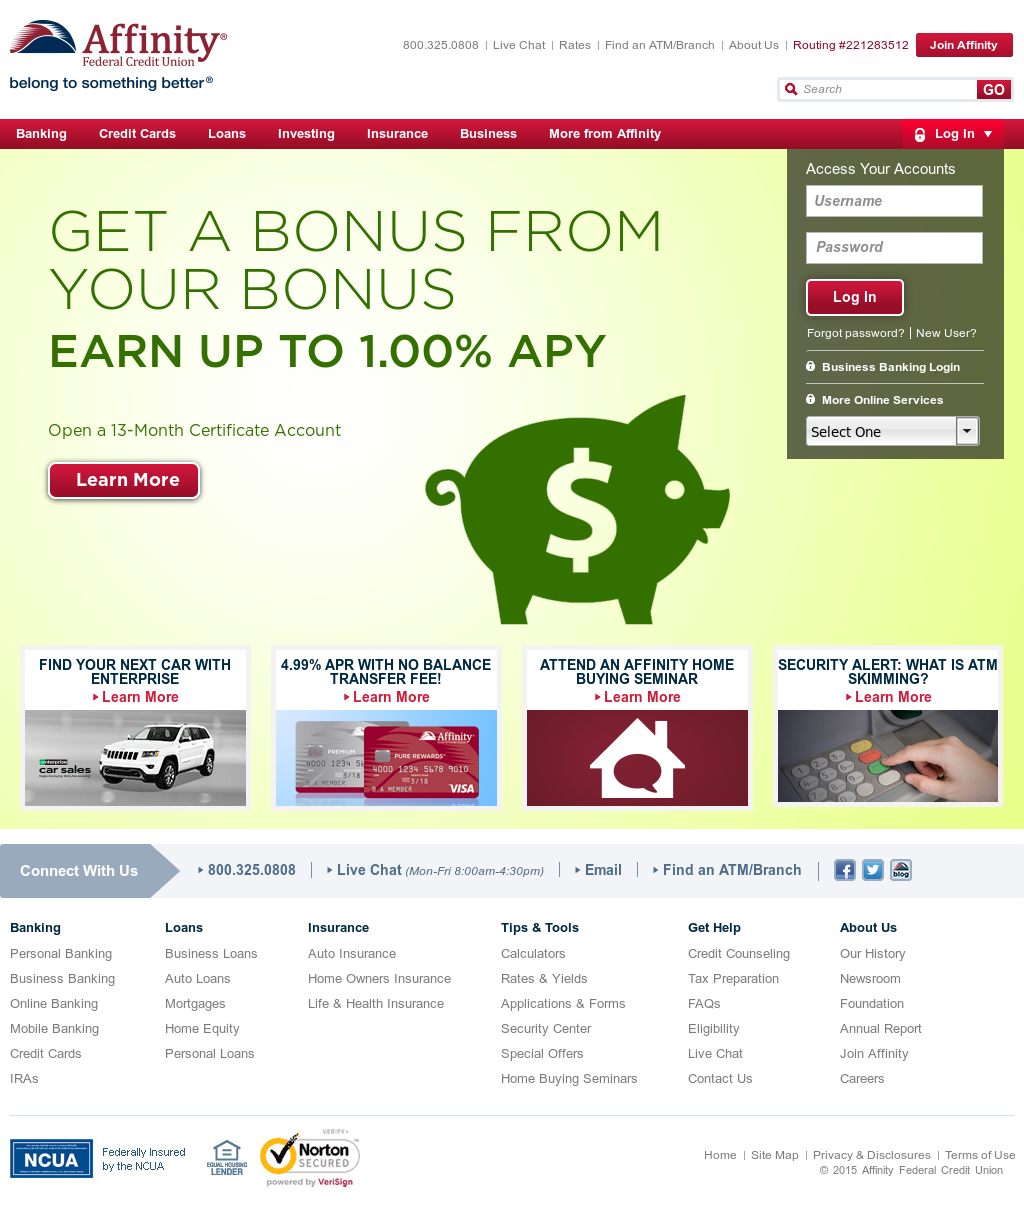 affinityfcu competitors, revenue and employees - owler company profile